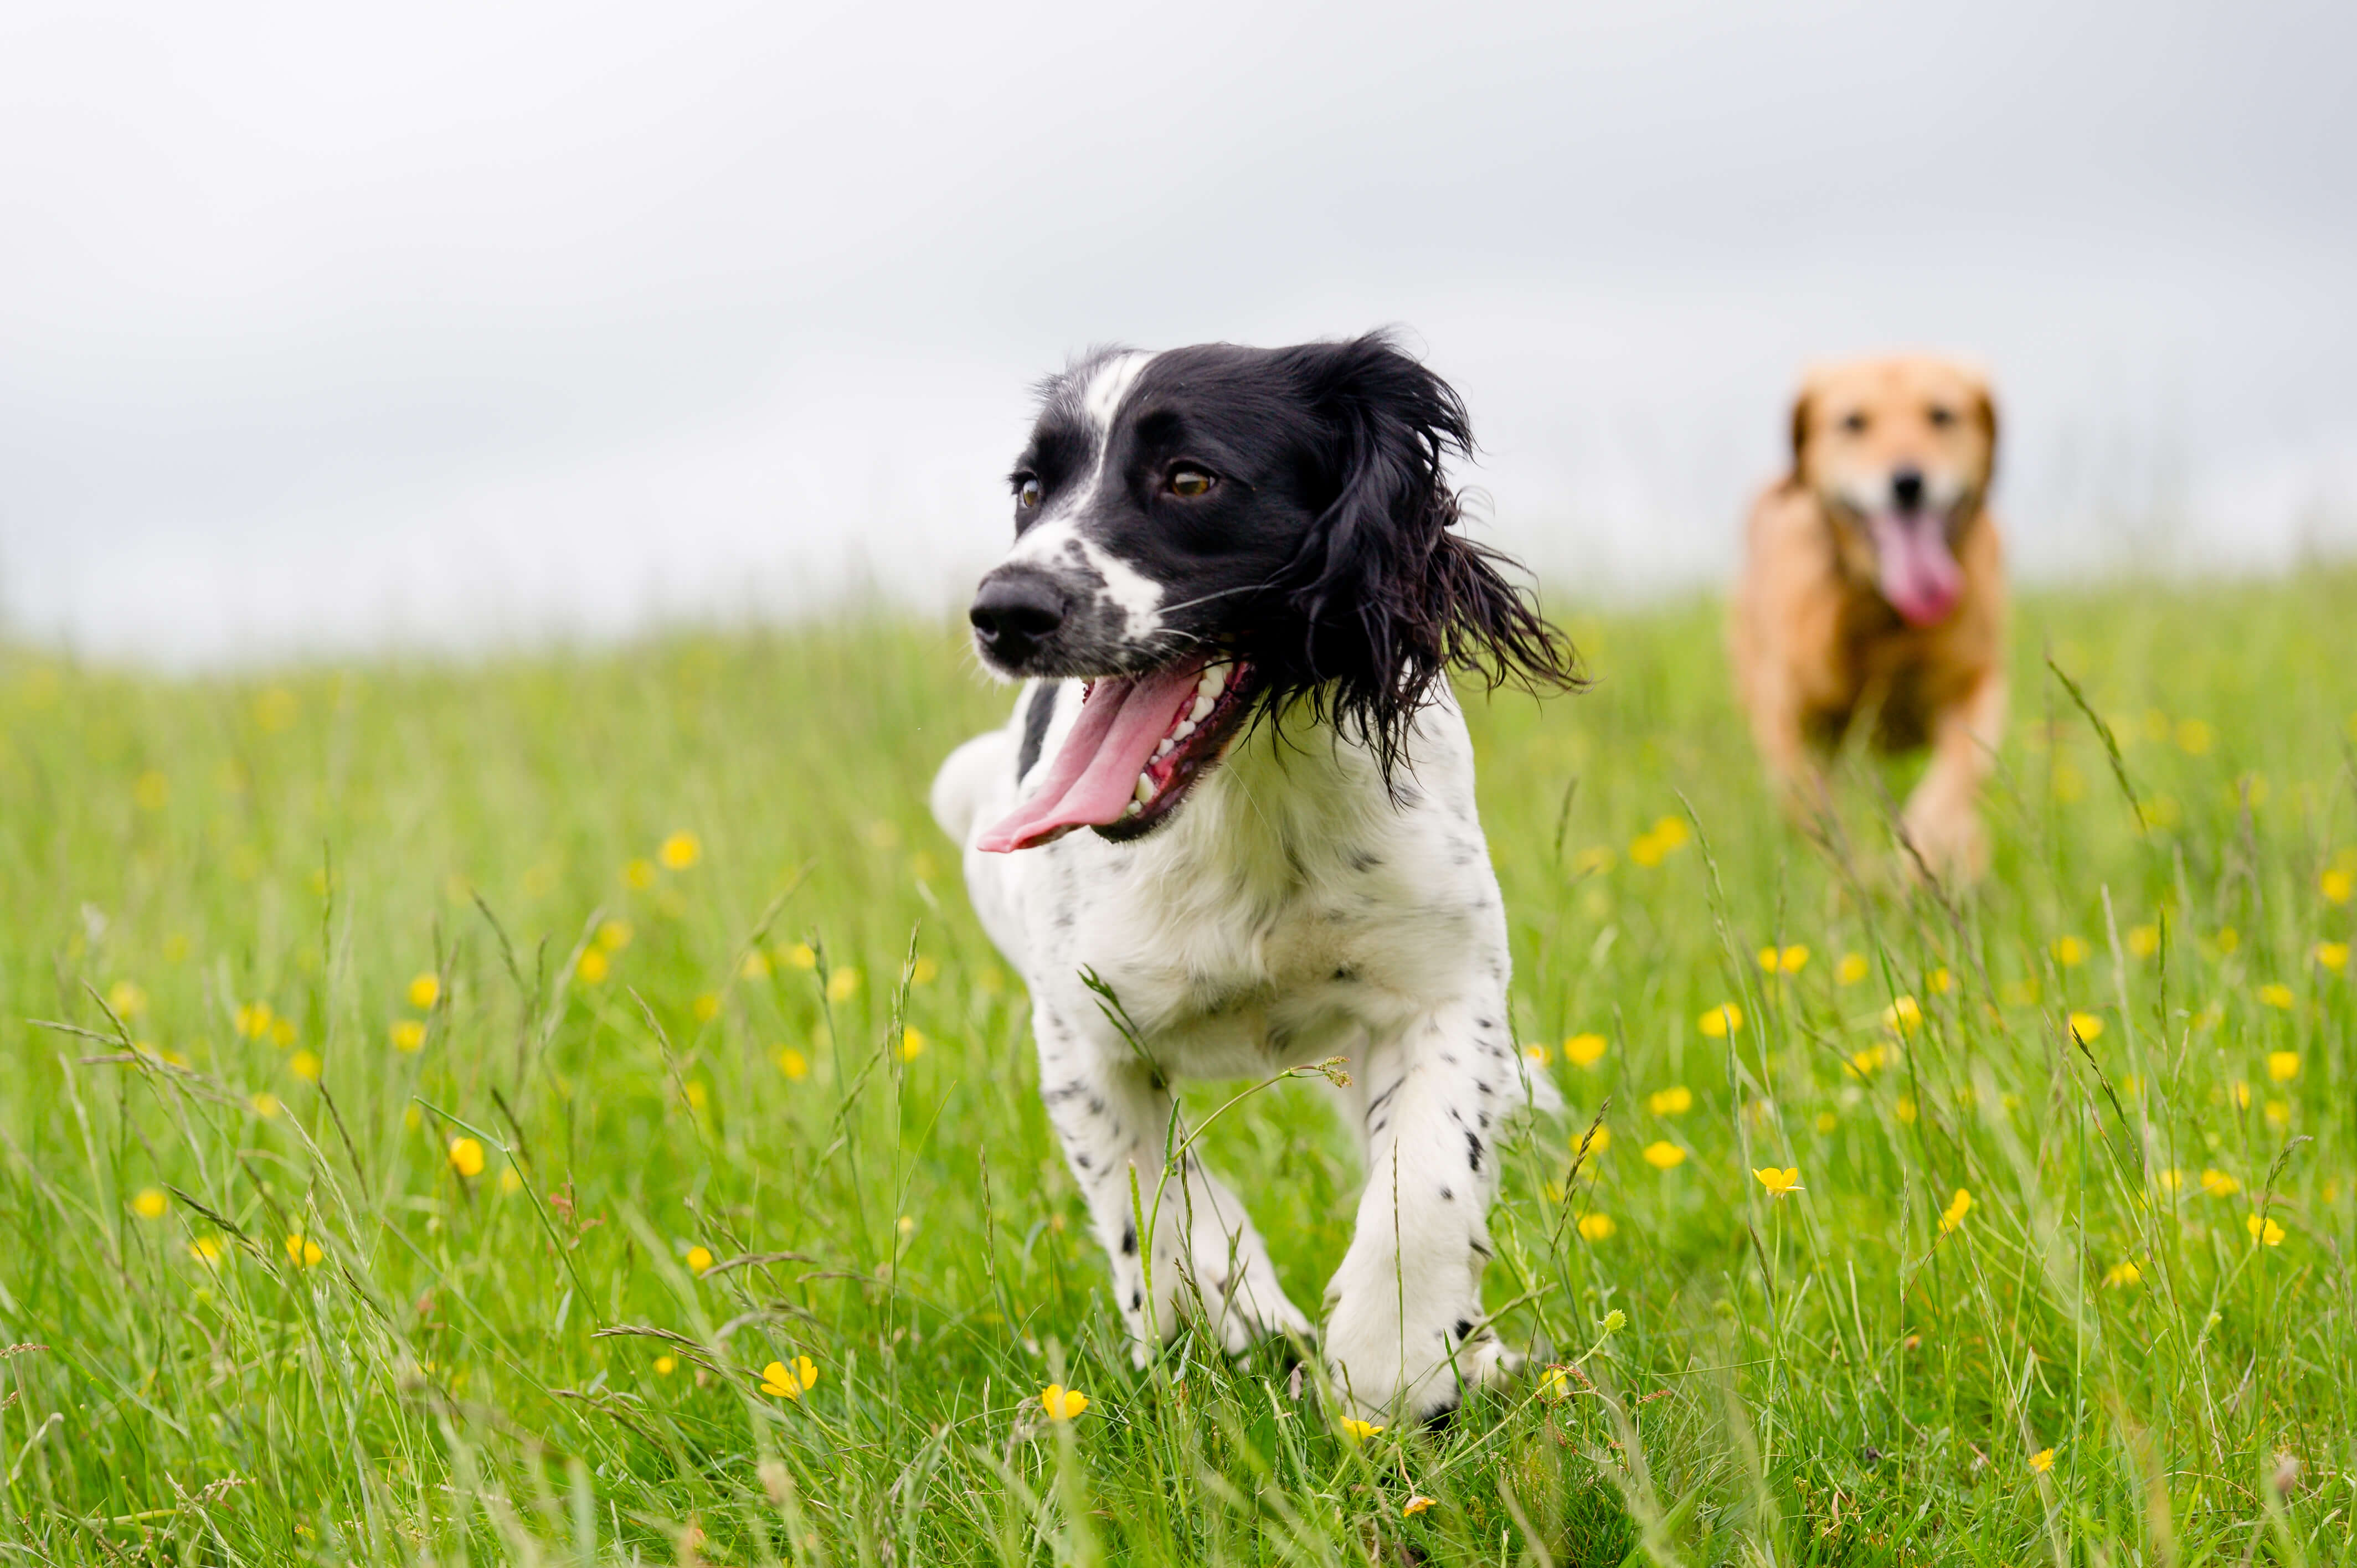 A springer spaniel and a mixed breed brown dog running in a field of yellow flowers.